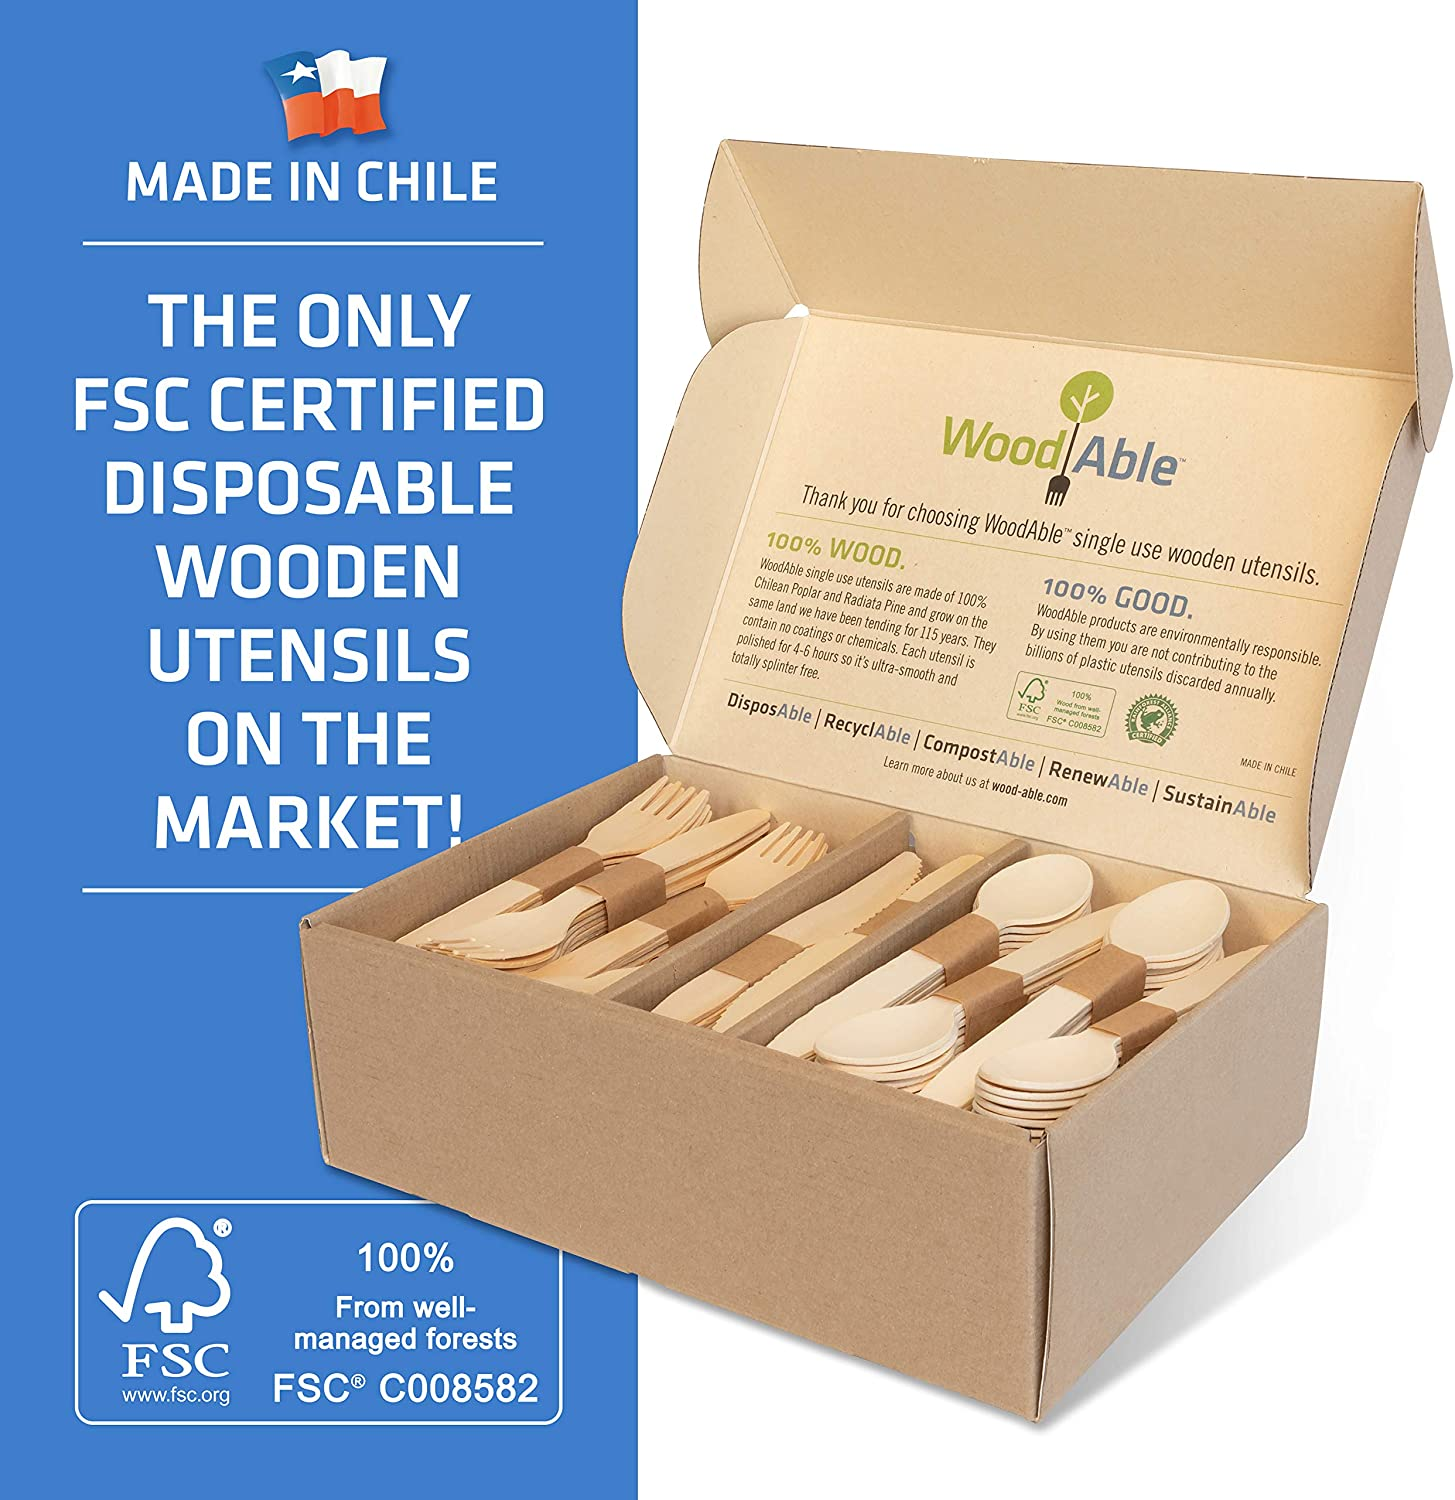 WoodAble - Disposable Wooden Forks, Spoons, Knives Set | Alternative to Plastic Cutlery - Biodegradable Replacements (200 Count - 80 Forks, 80 Spoons, 40 Knives)